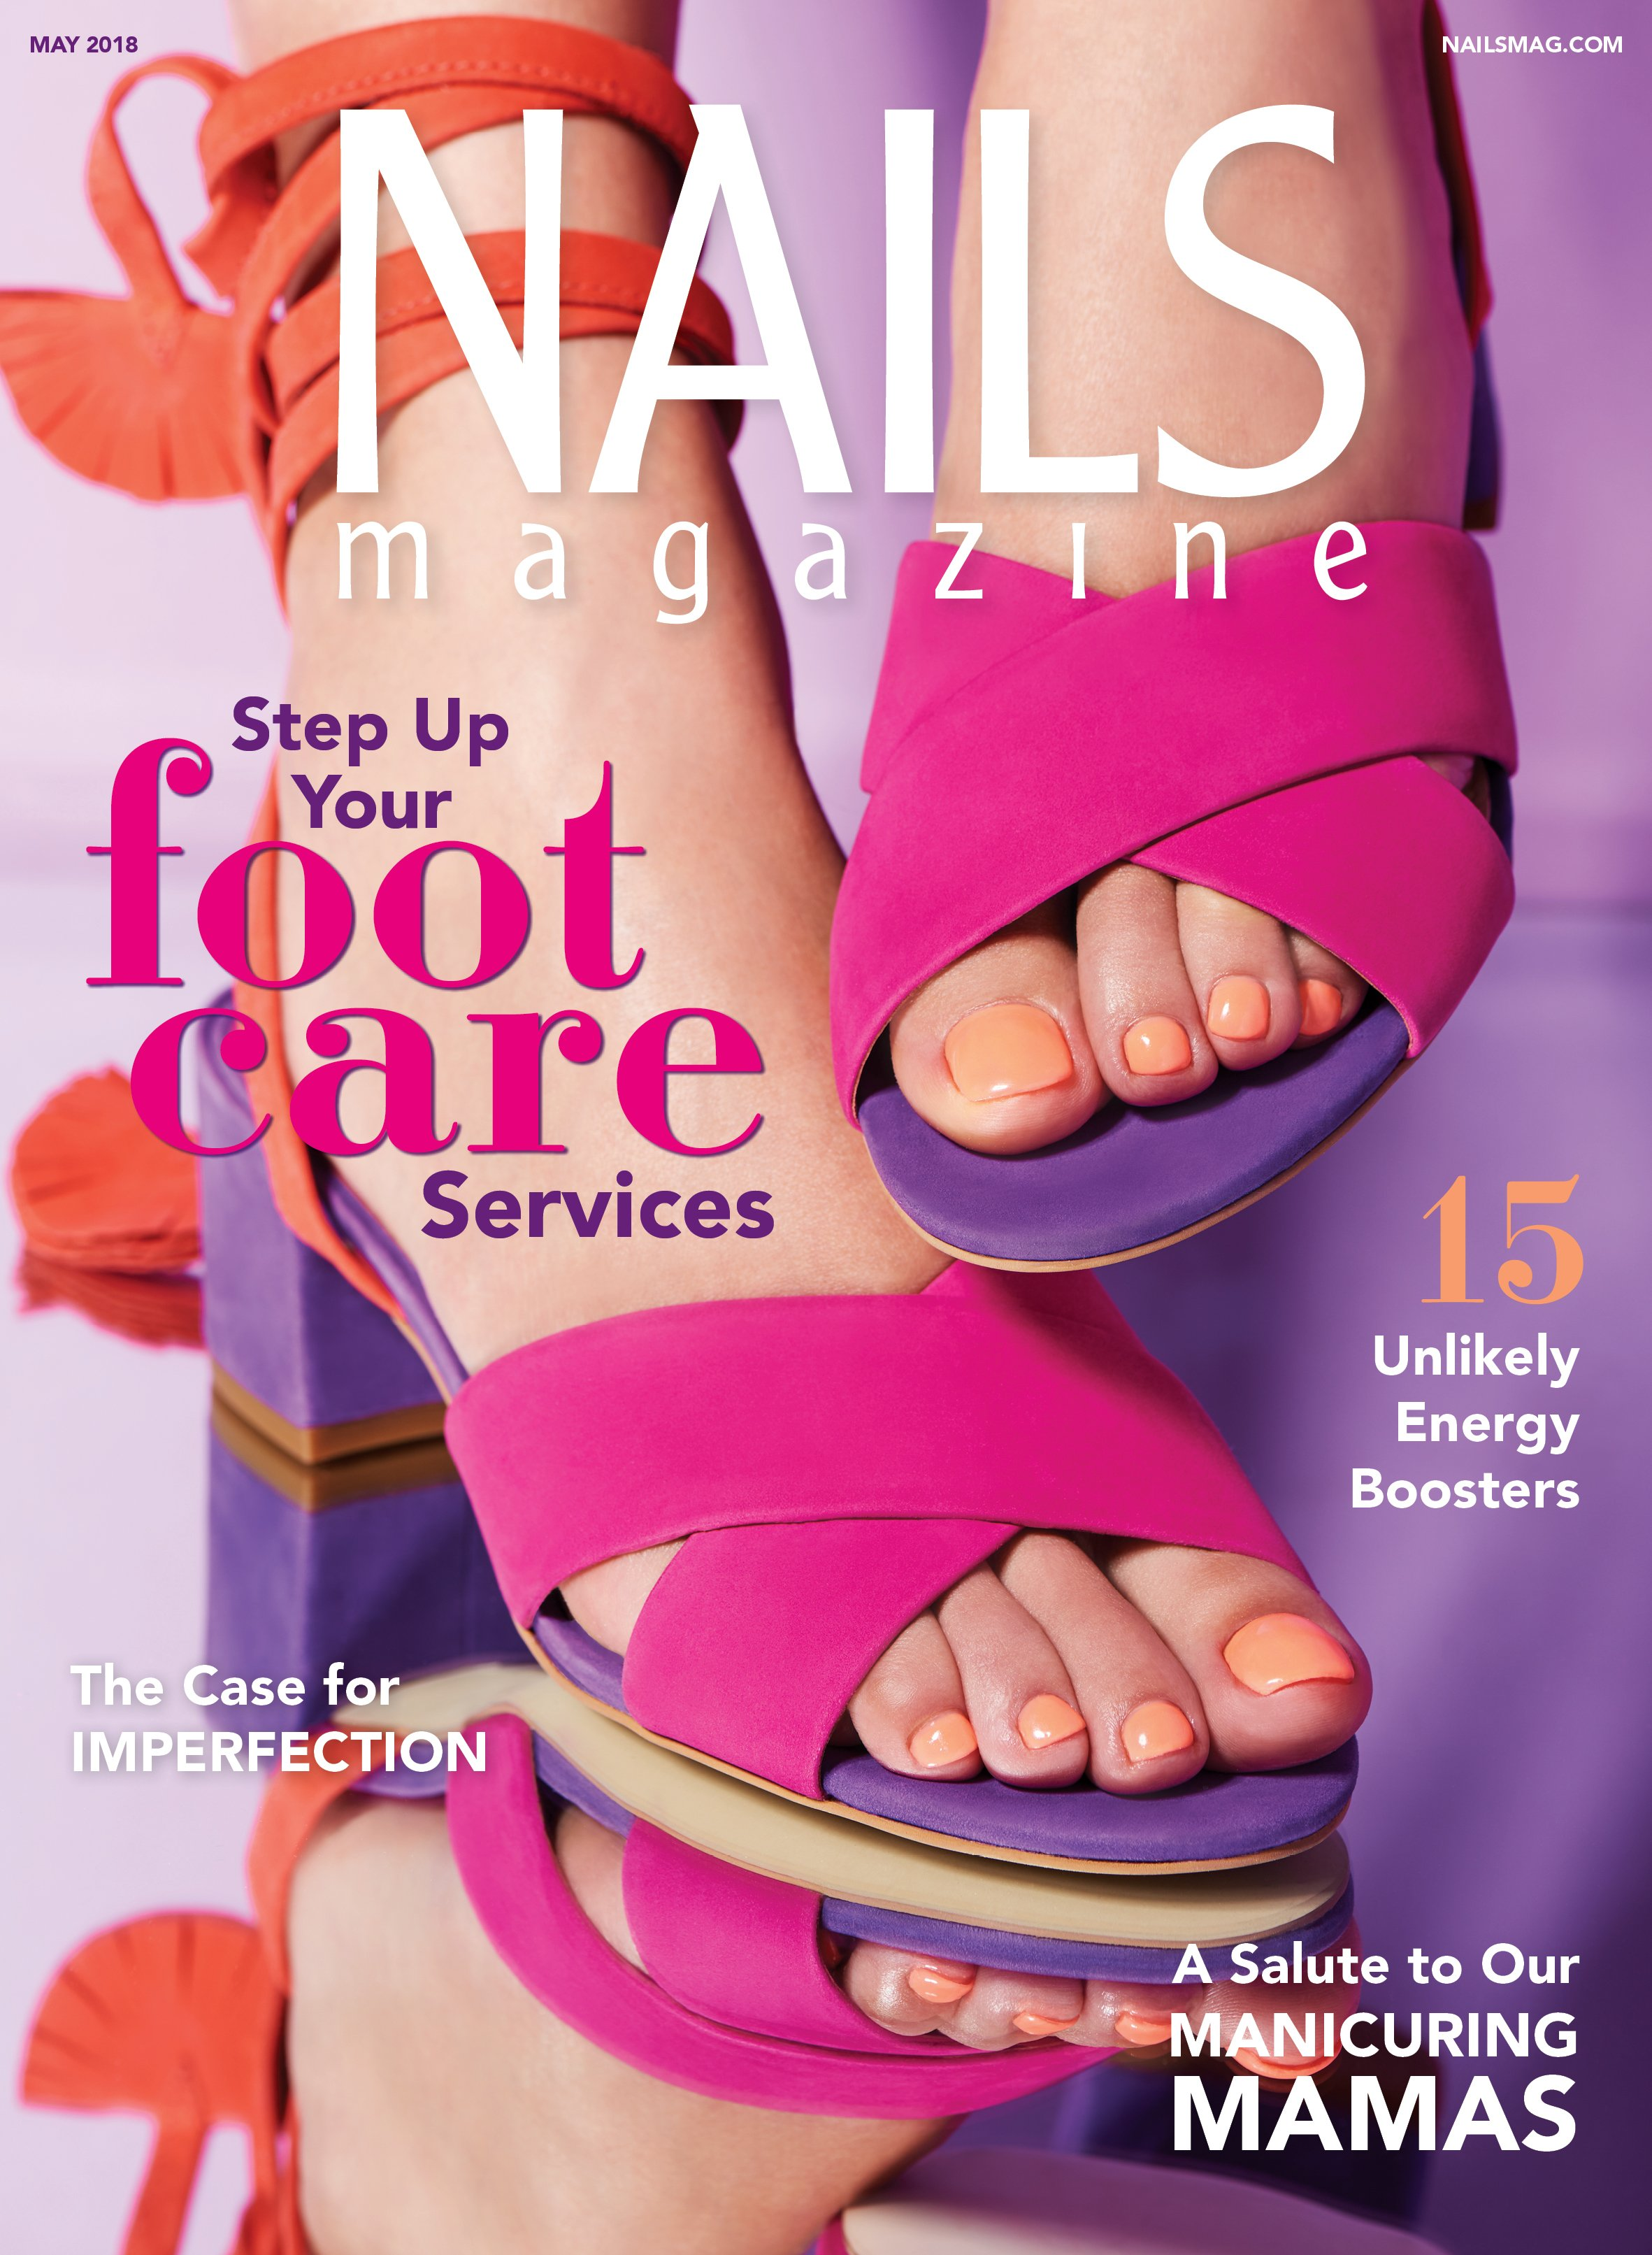 NAILS Magazine | May 2018 Issue